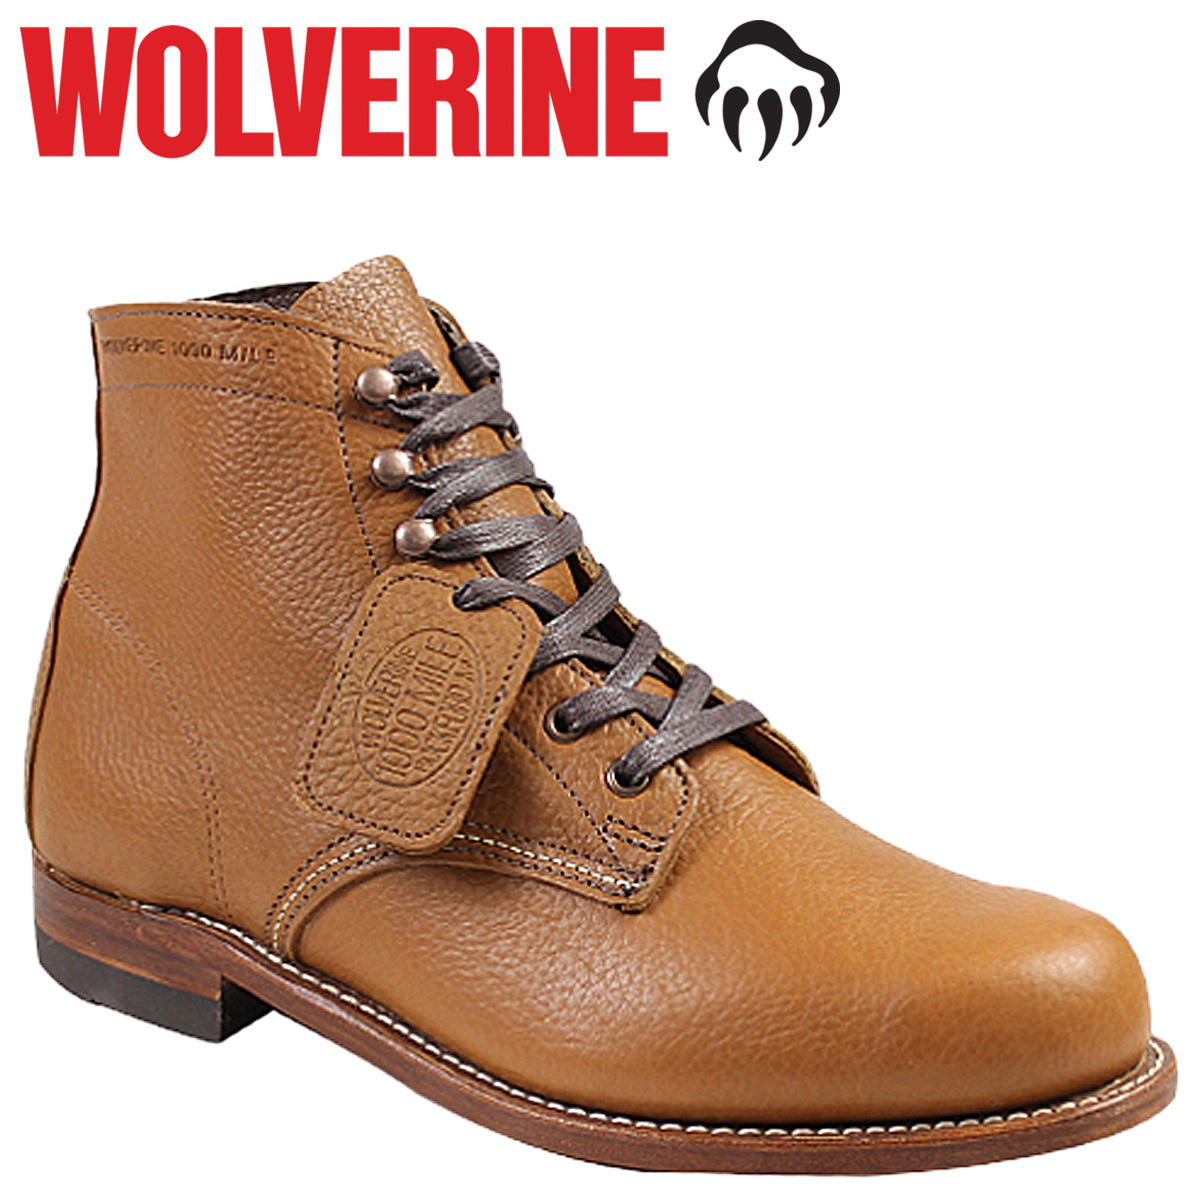 f4dedc39d7e Wolverene WOLVERINE 1,000 miles boots boots CENTENNIAL 1000 MILE BOOT D  Wise W00910 work boots men